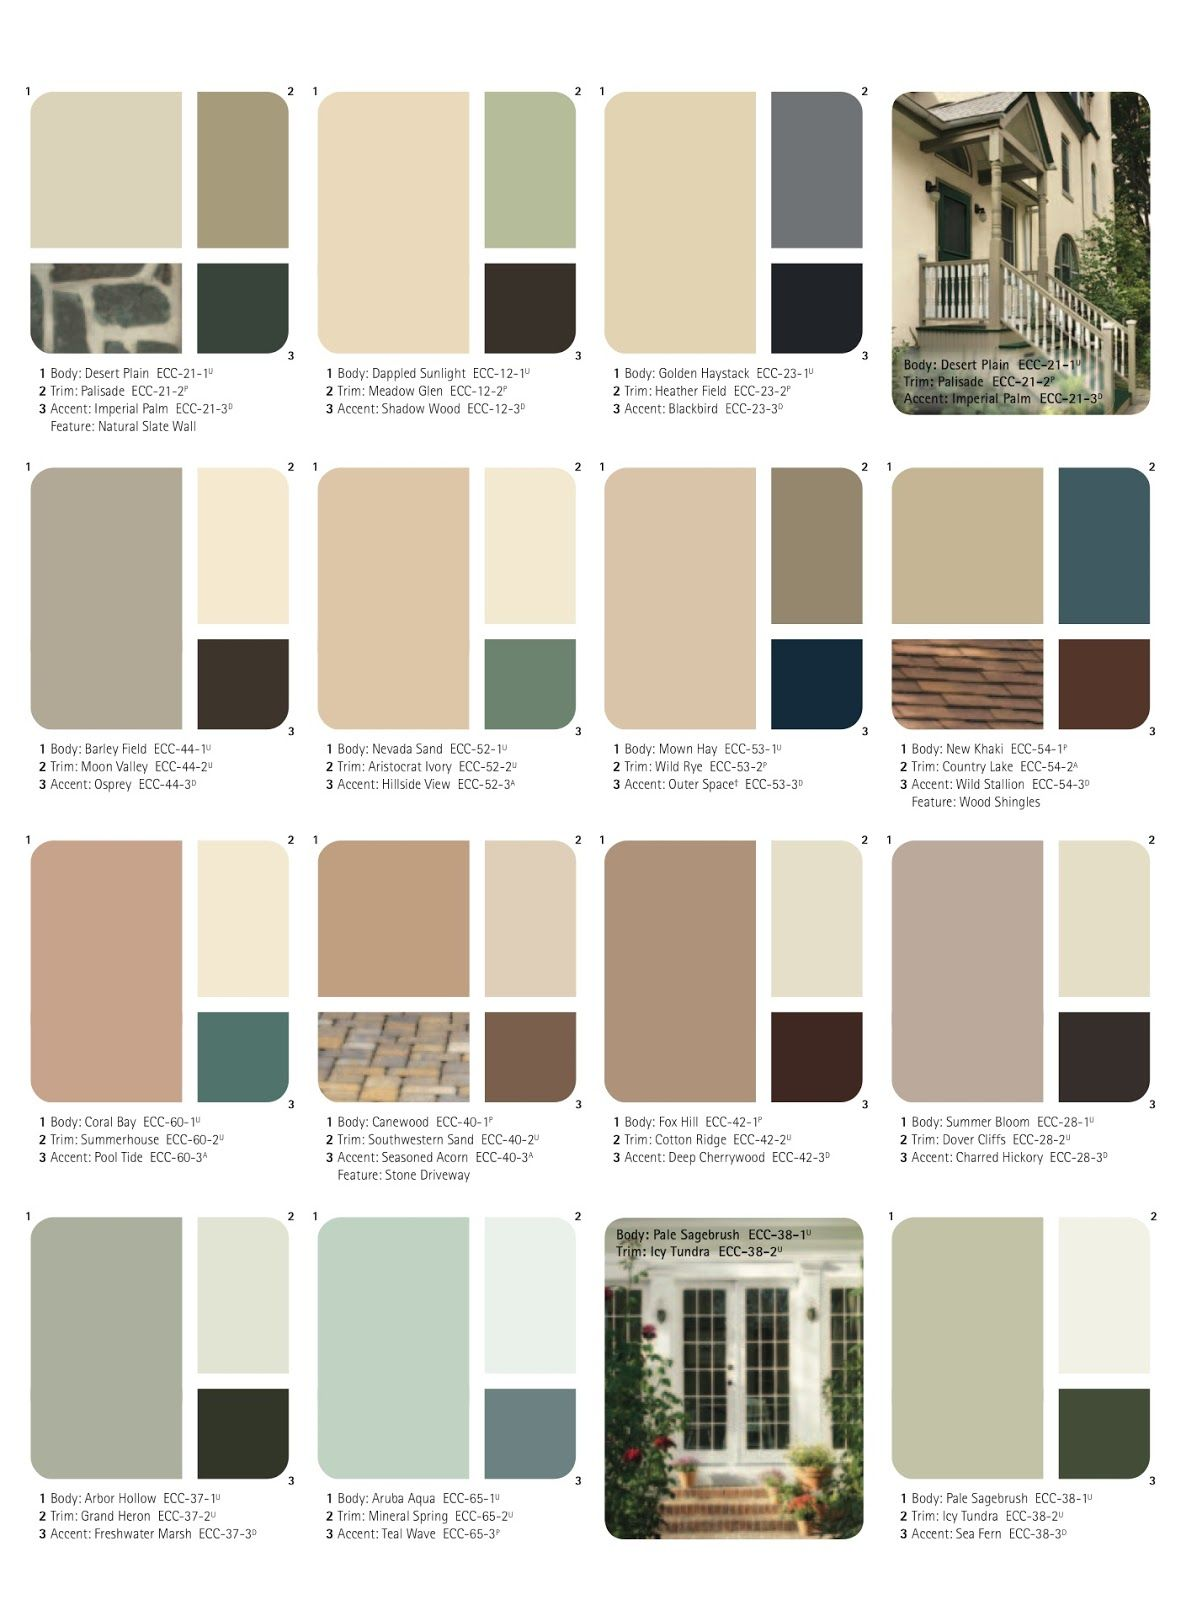 exterior paint schemes on pinterest exterior house paints house paint exterior and stucco. Black Bedroom Furniture Sets. Home Design Ideas